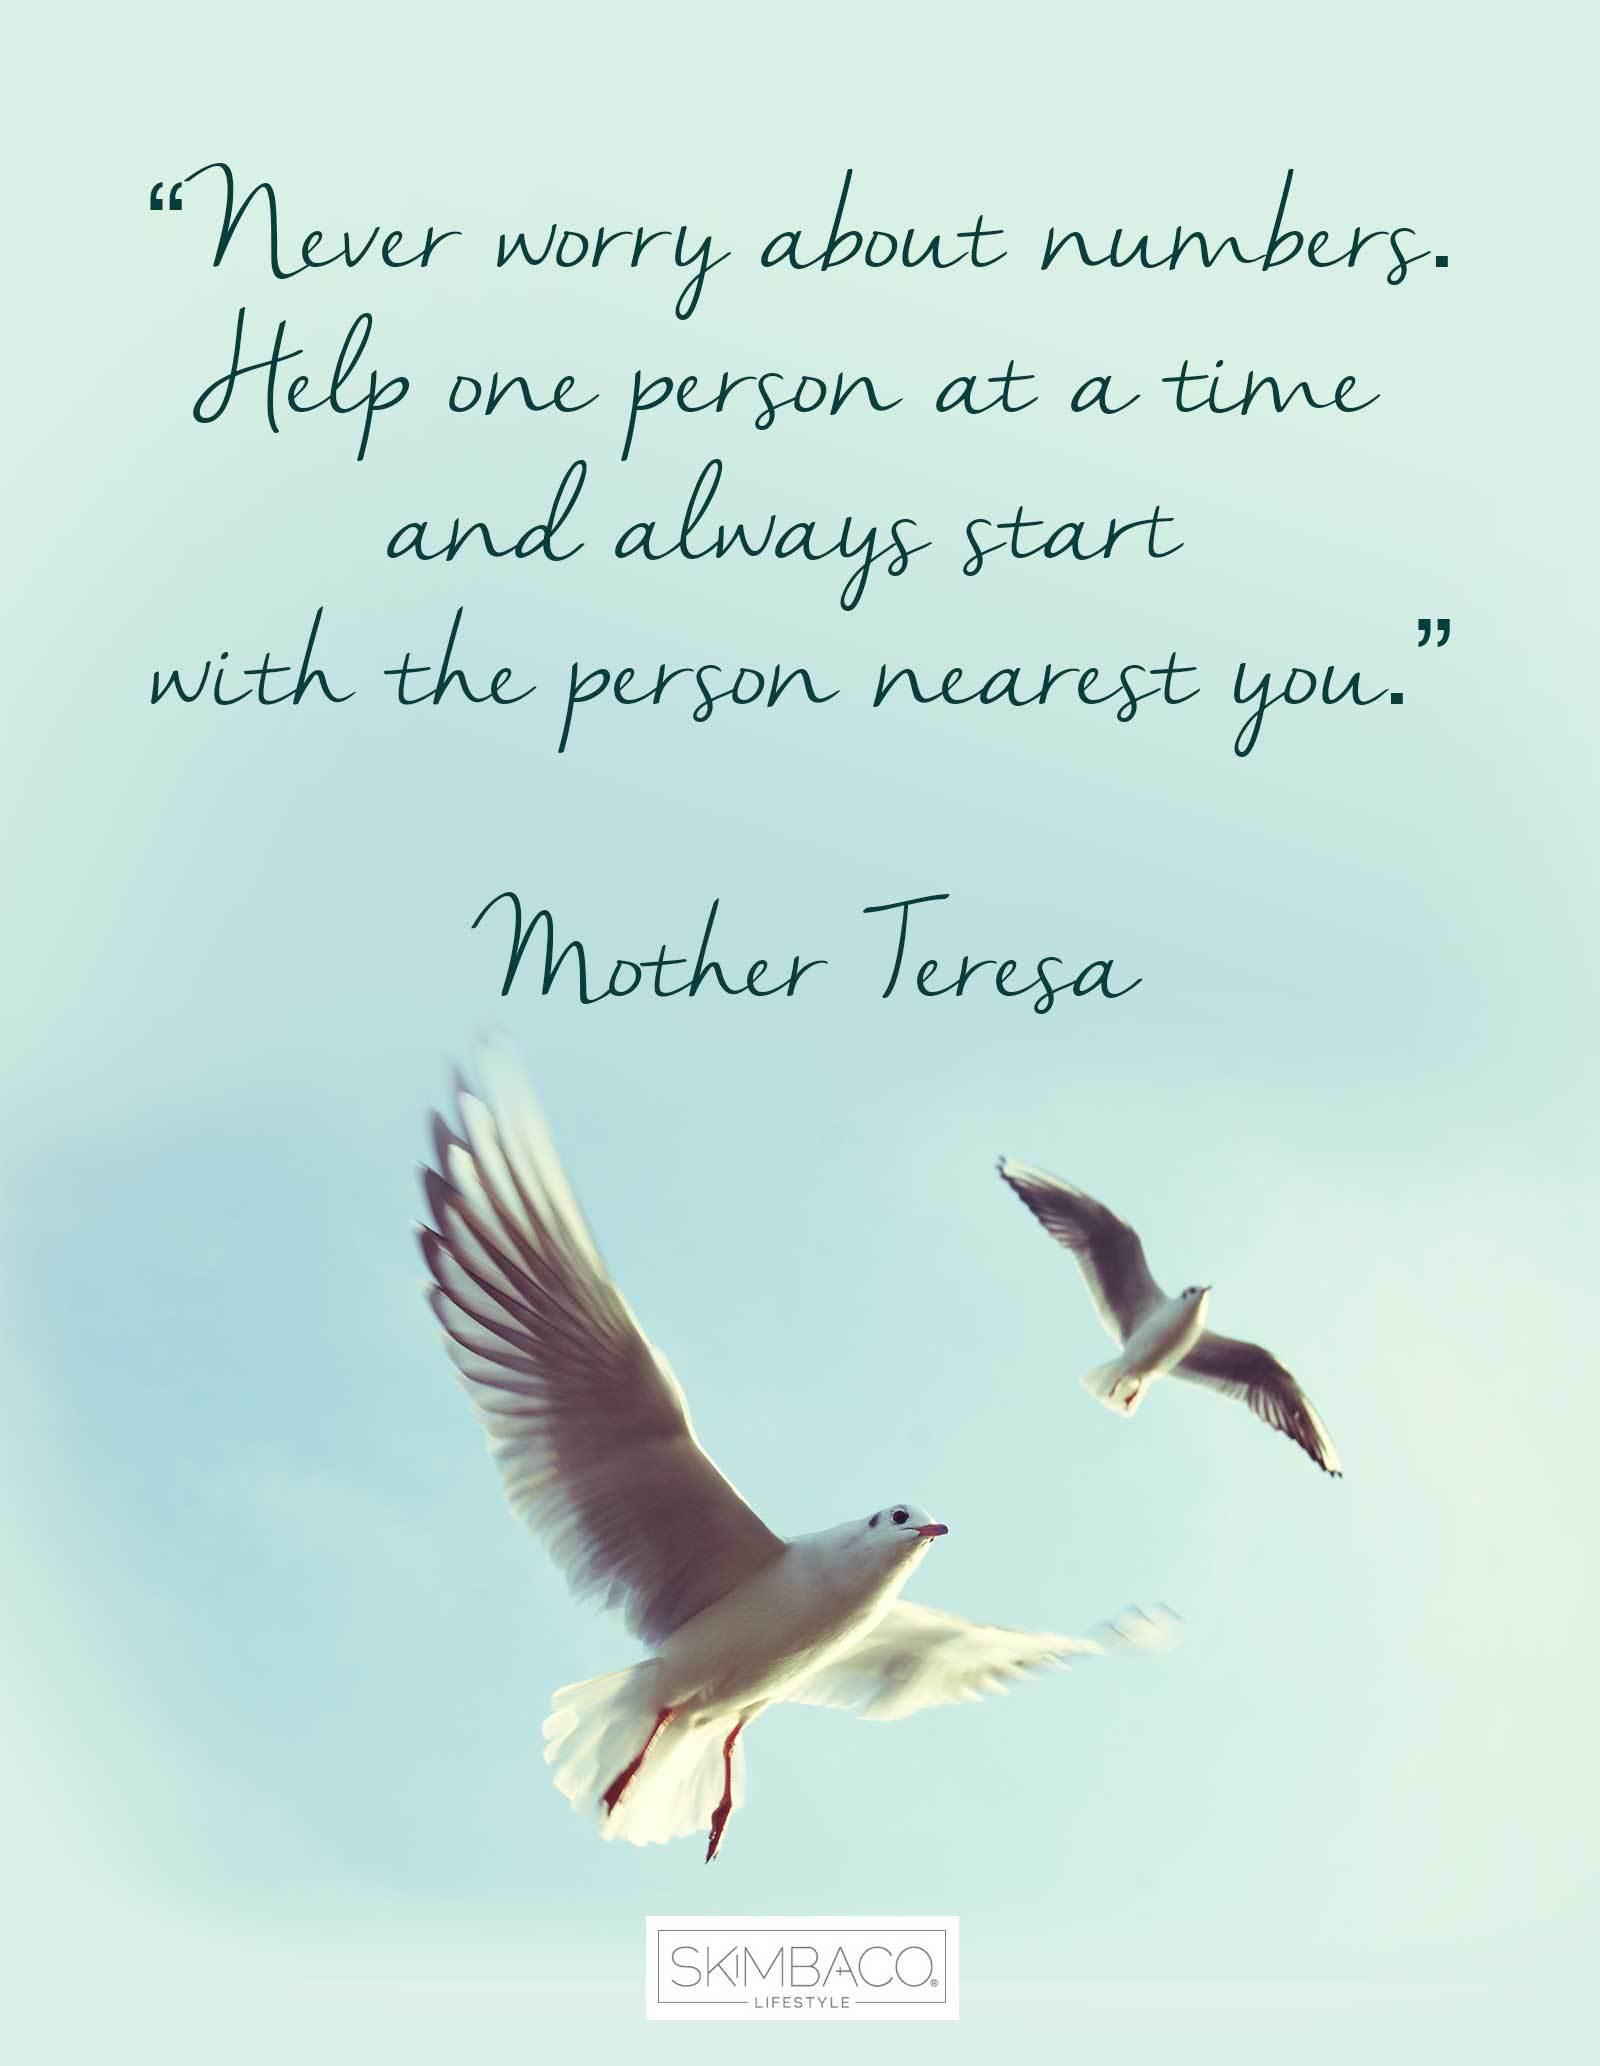 """""""Never worry about numbers. Help one person at a time and always start with the person nearest you."""" ― Mother Teresa"""